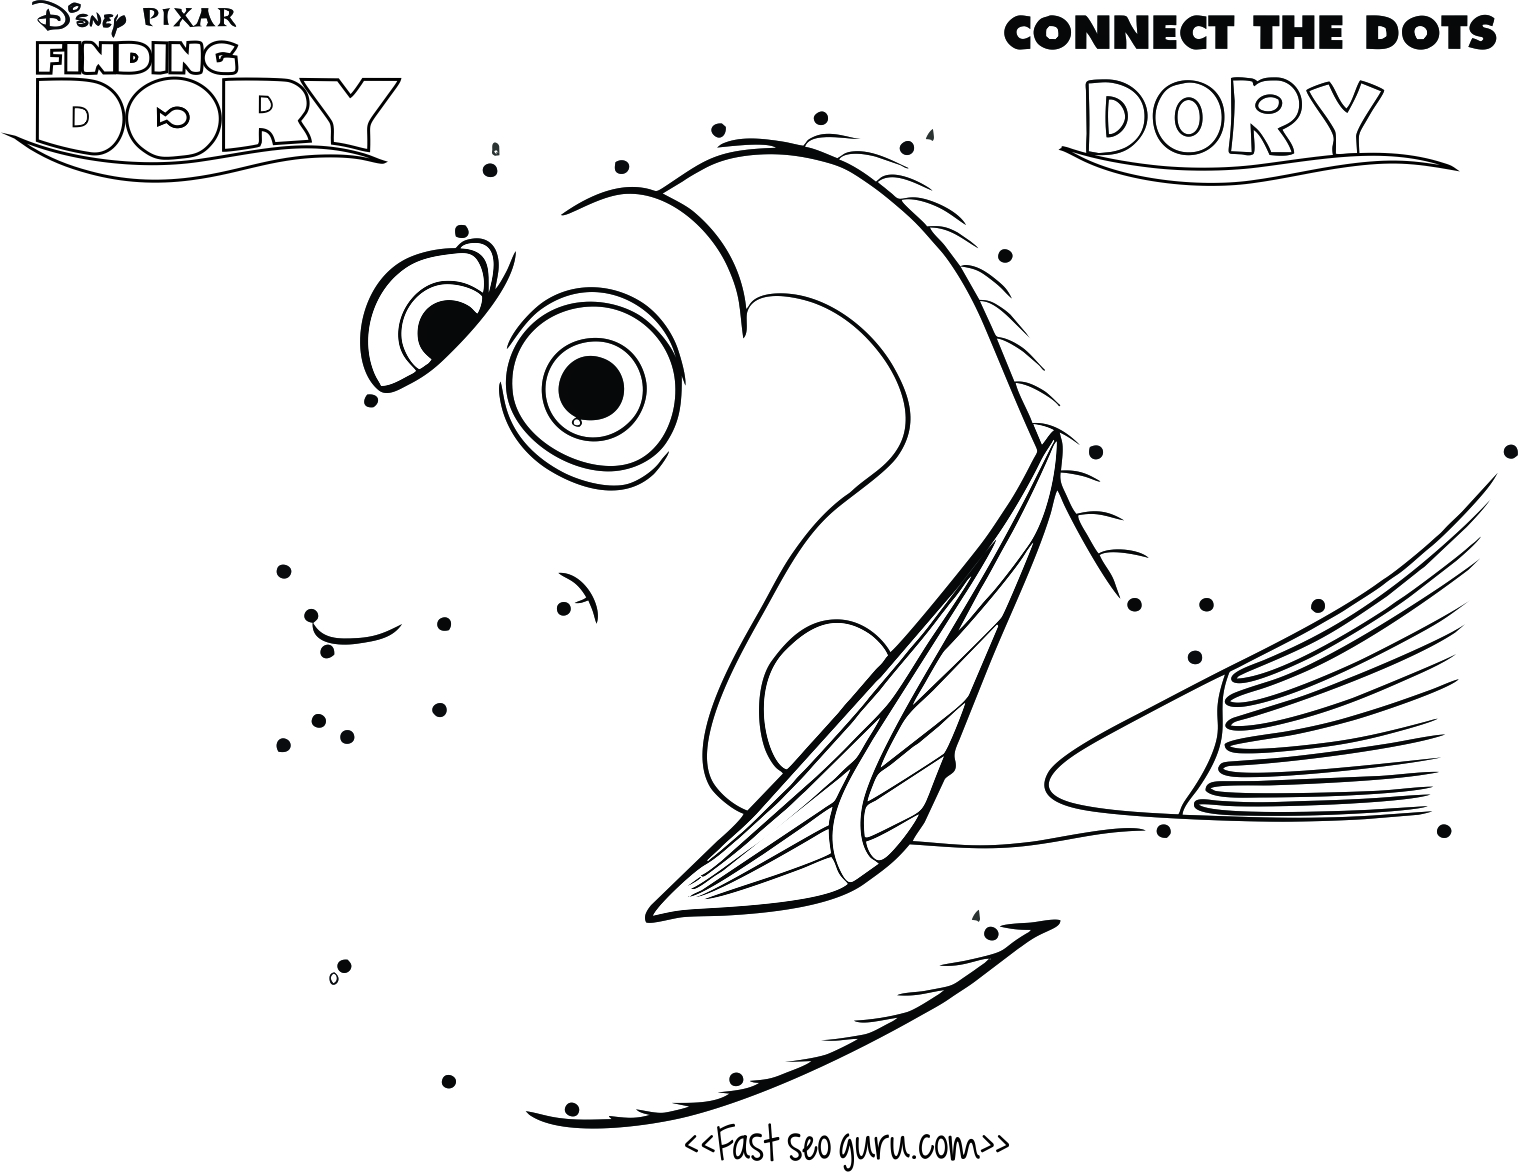 Printable Finding Dory Connect The Dots Disney Page For Kids